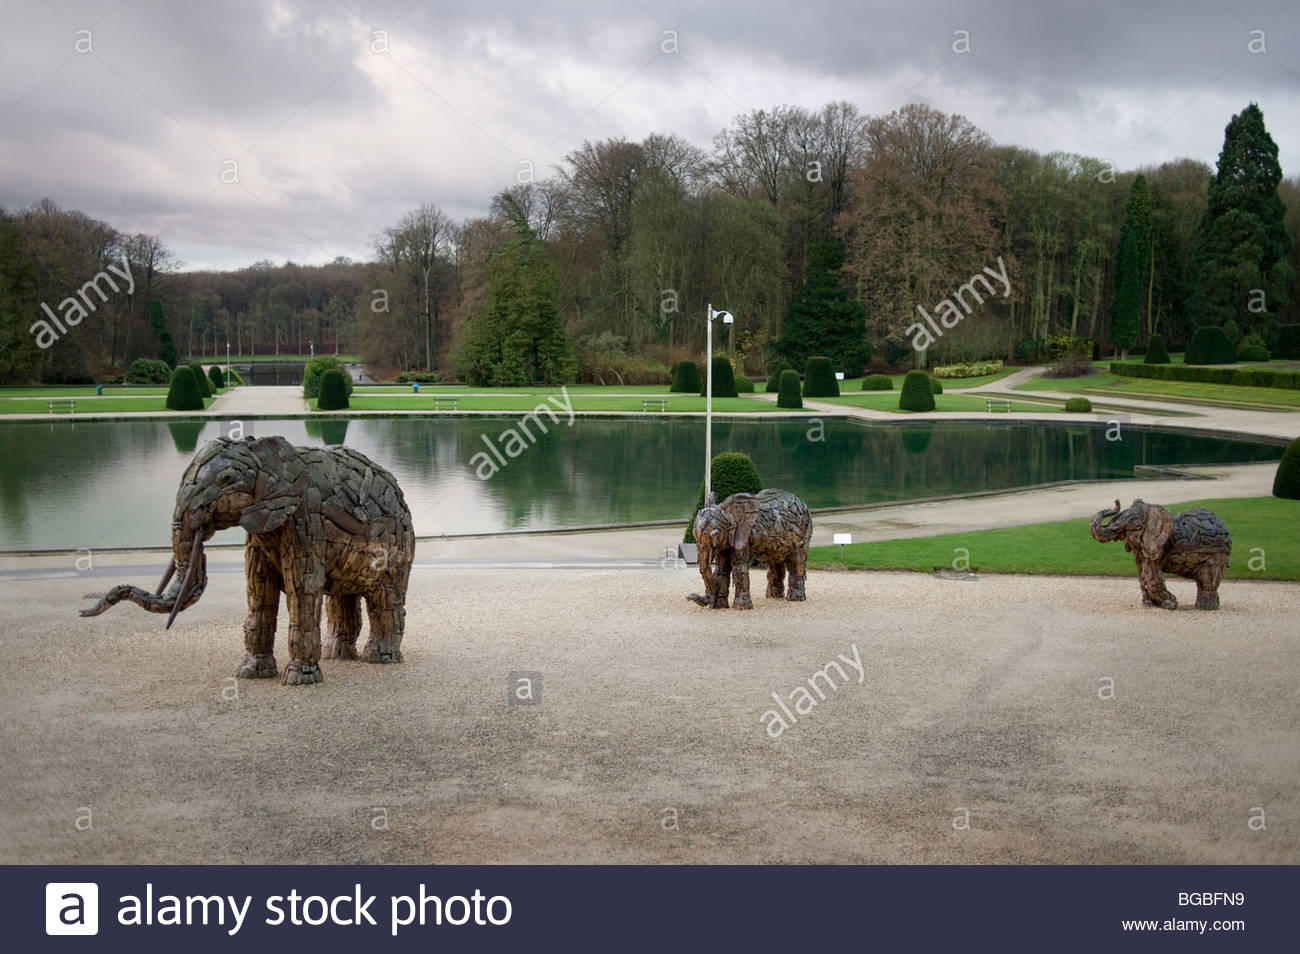 Landscaped grounds of the Royal Museum of Central Africa in Tervuren, on the outskirts of Brussels, Belgium. - Stock Image